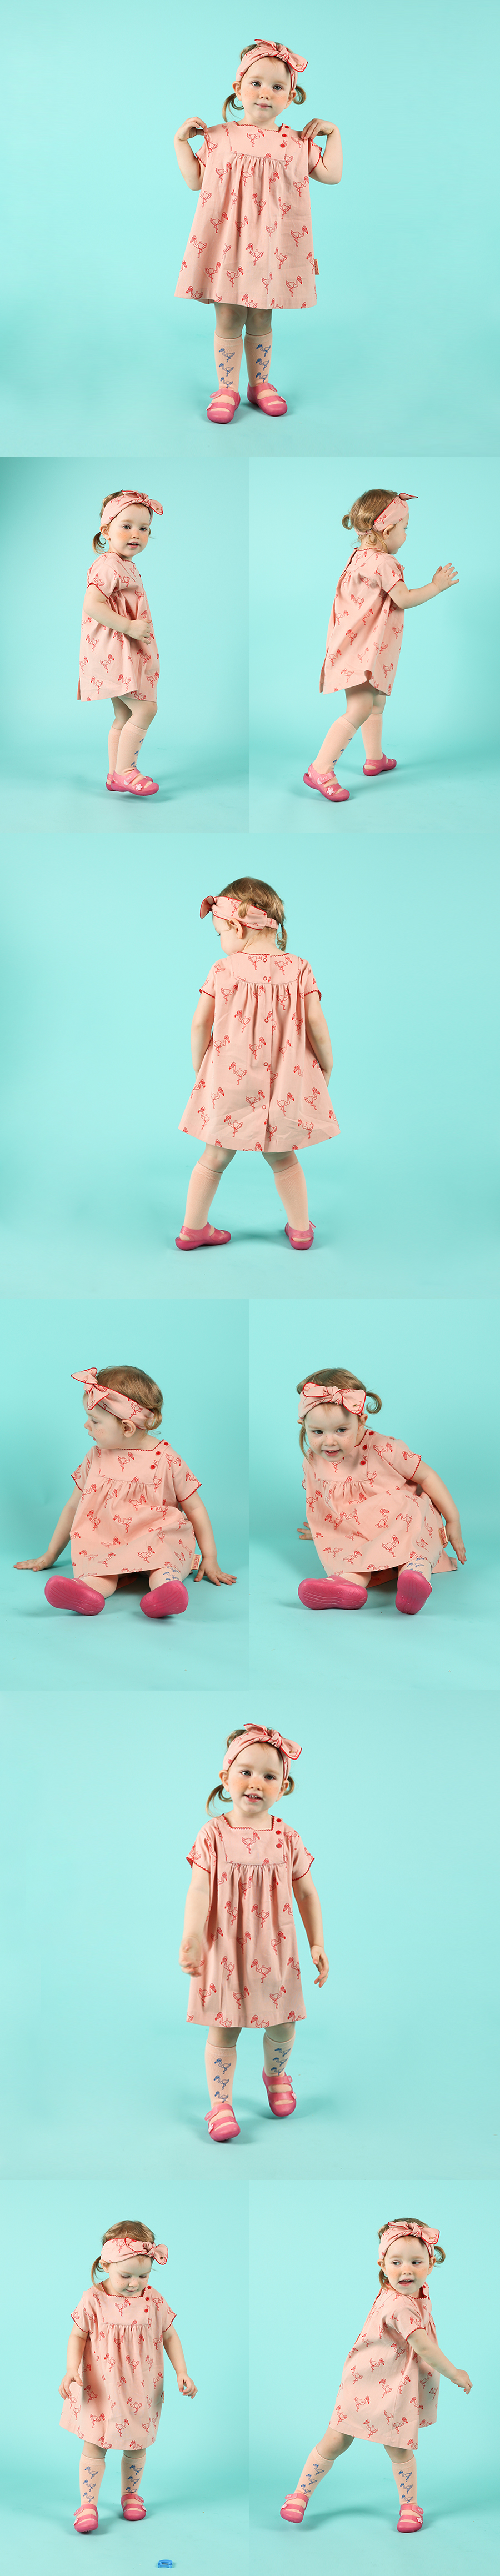 Multi flamingo baby dress 상세 이미지